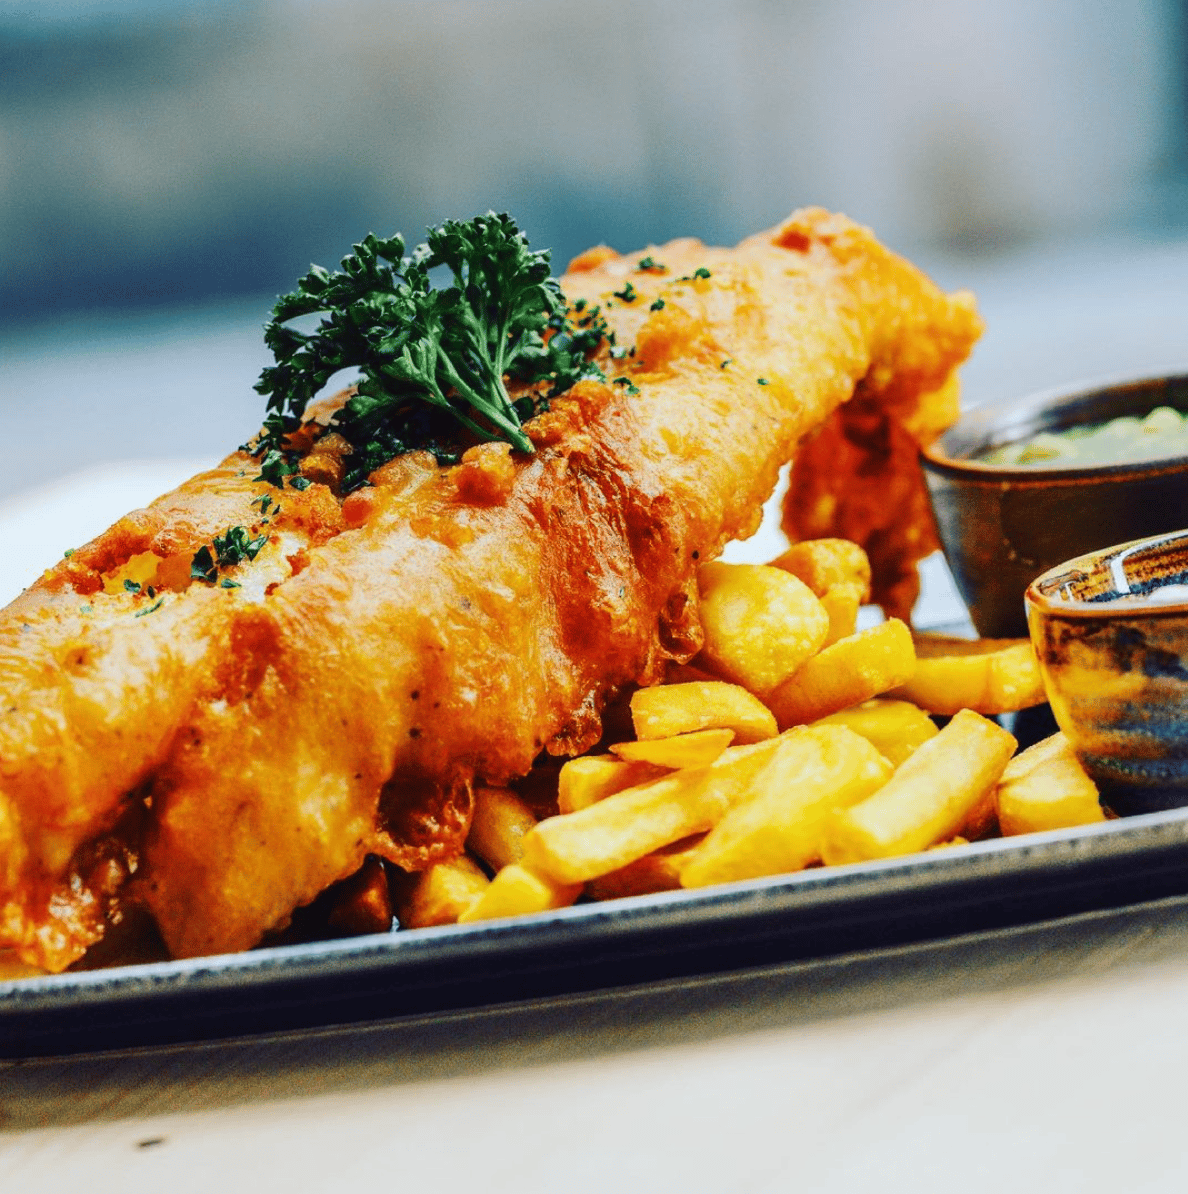 places to eat in the royal William yard hook and line plymouth